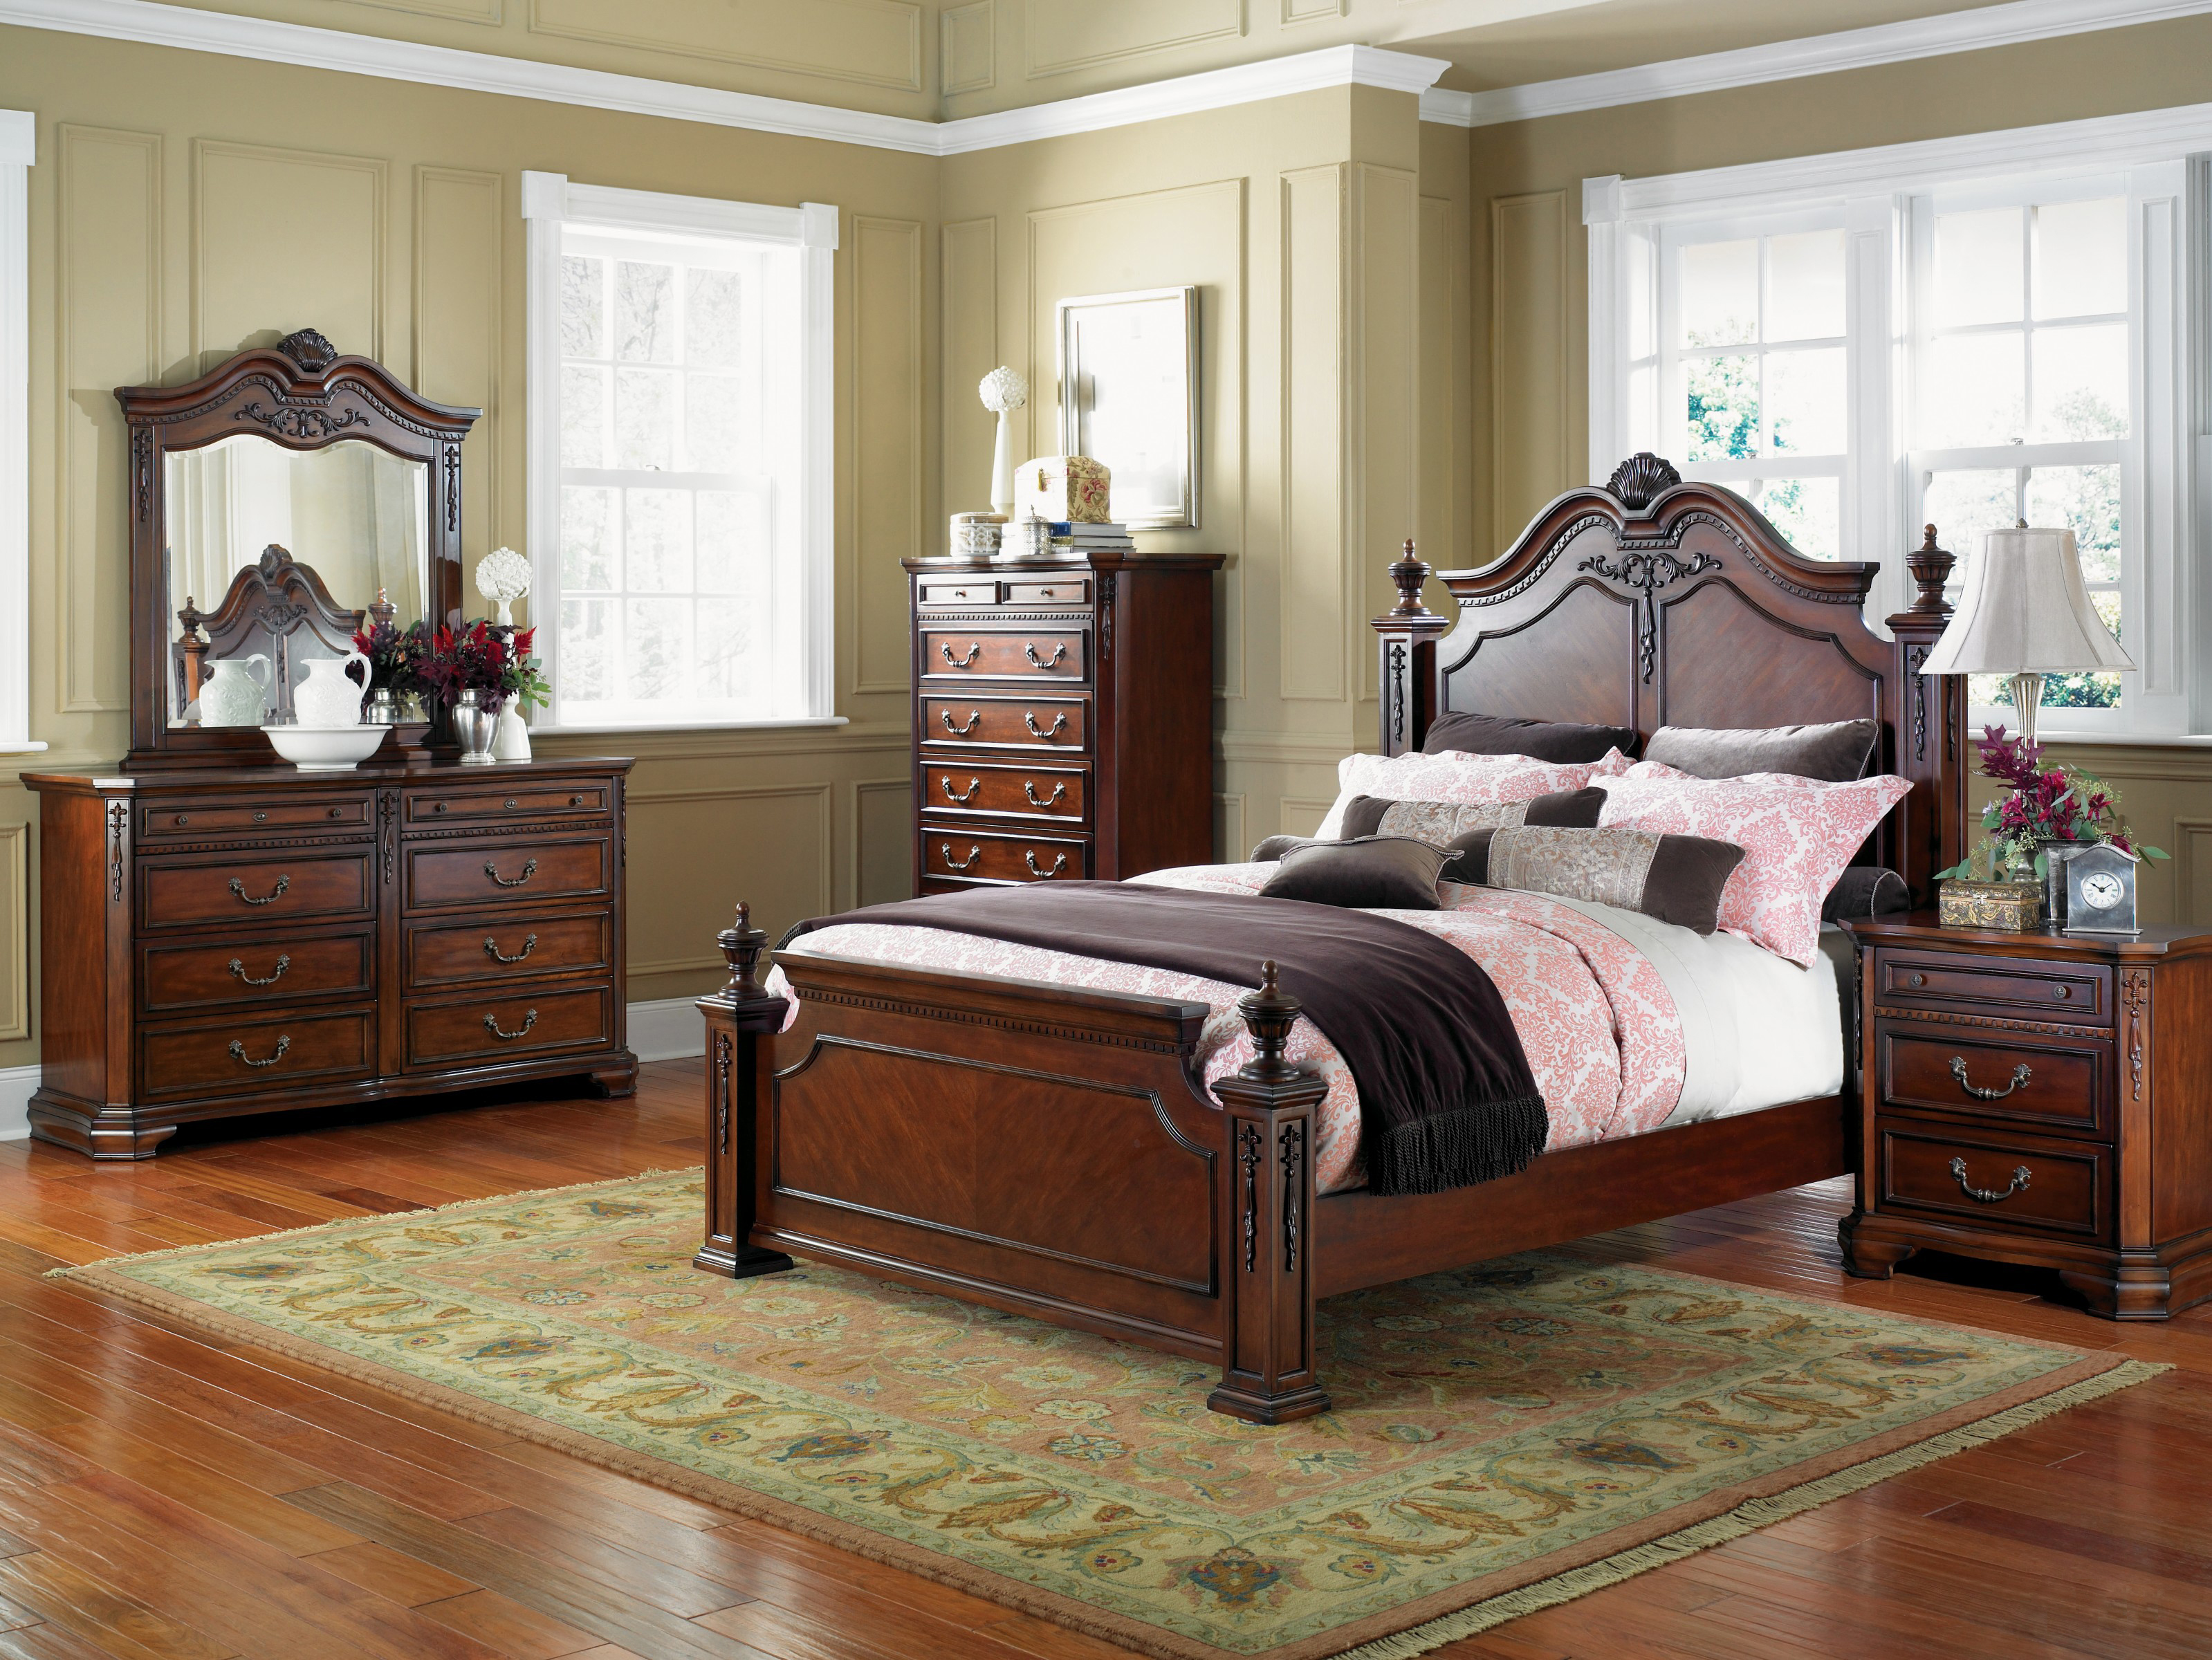 Excellent Bedroom Furniture 3198 x 2400 · 3937 kB · jpeg